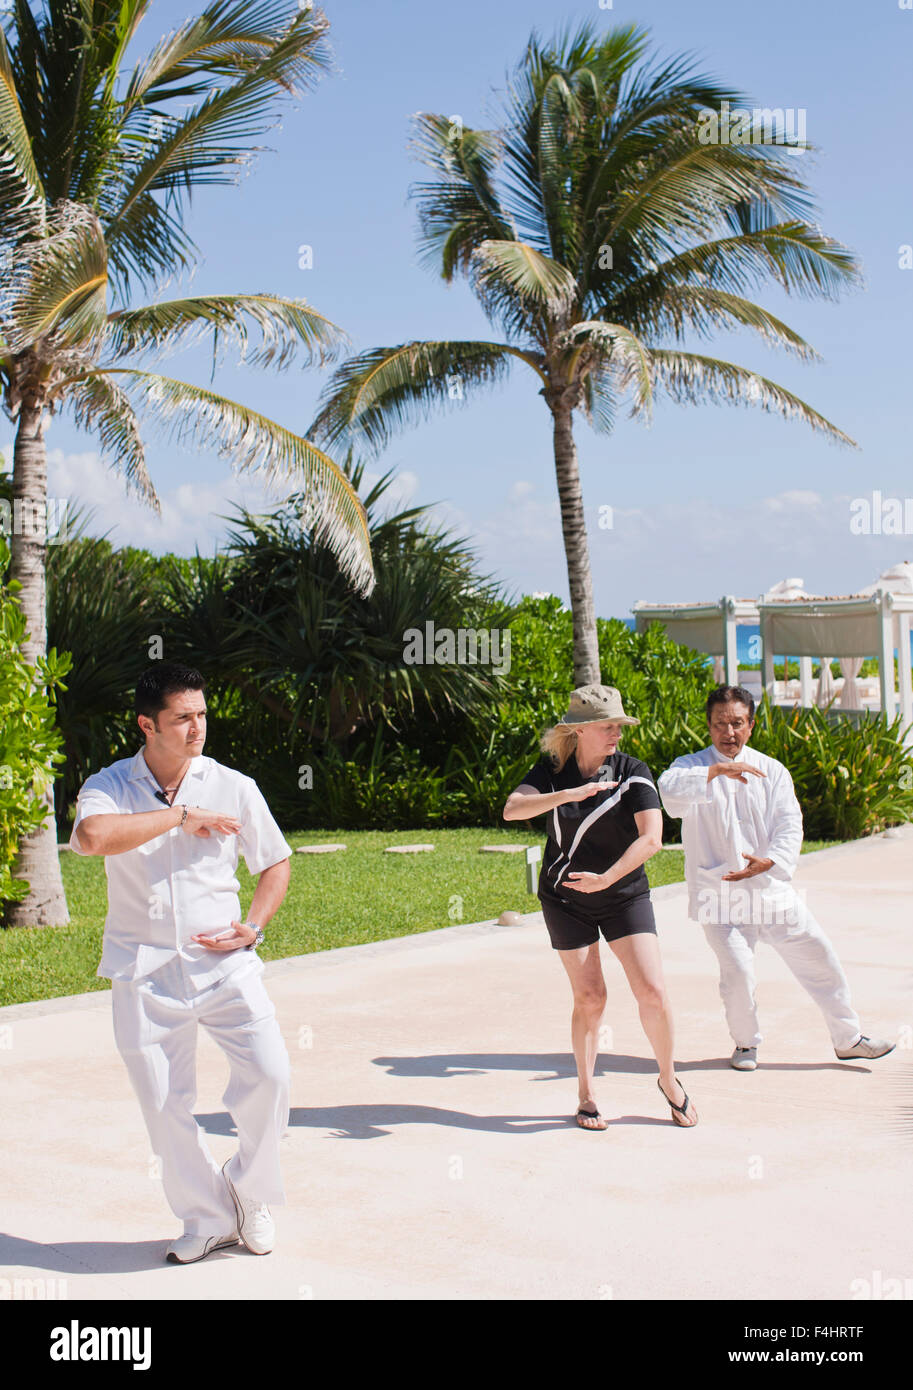 Tai chi class at a resort in Cancun, Mexico. - Stock Image